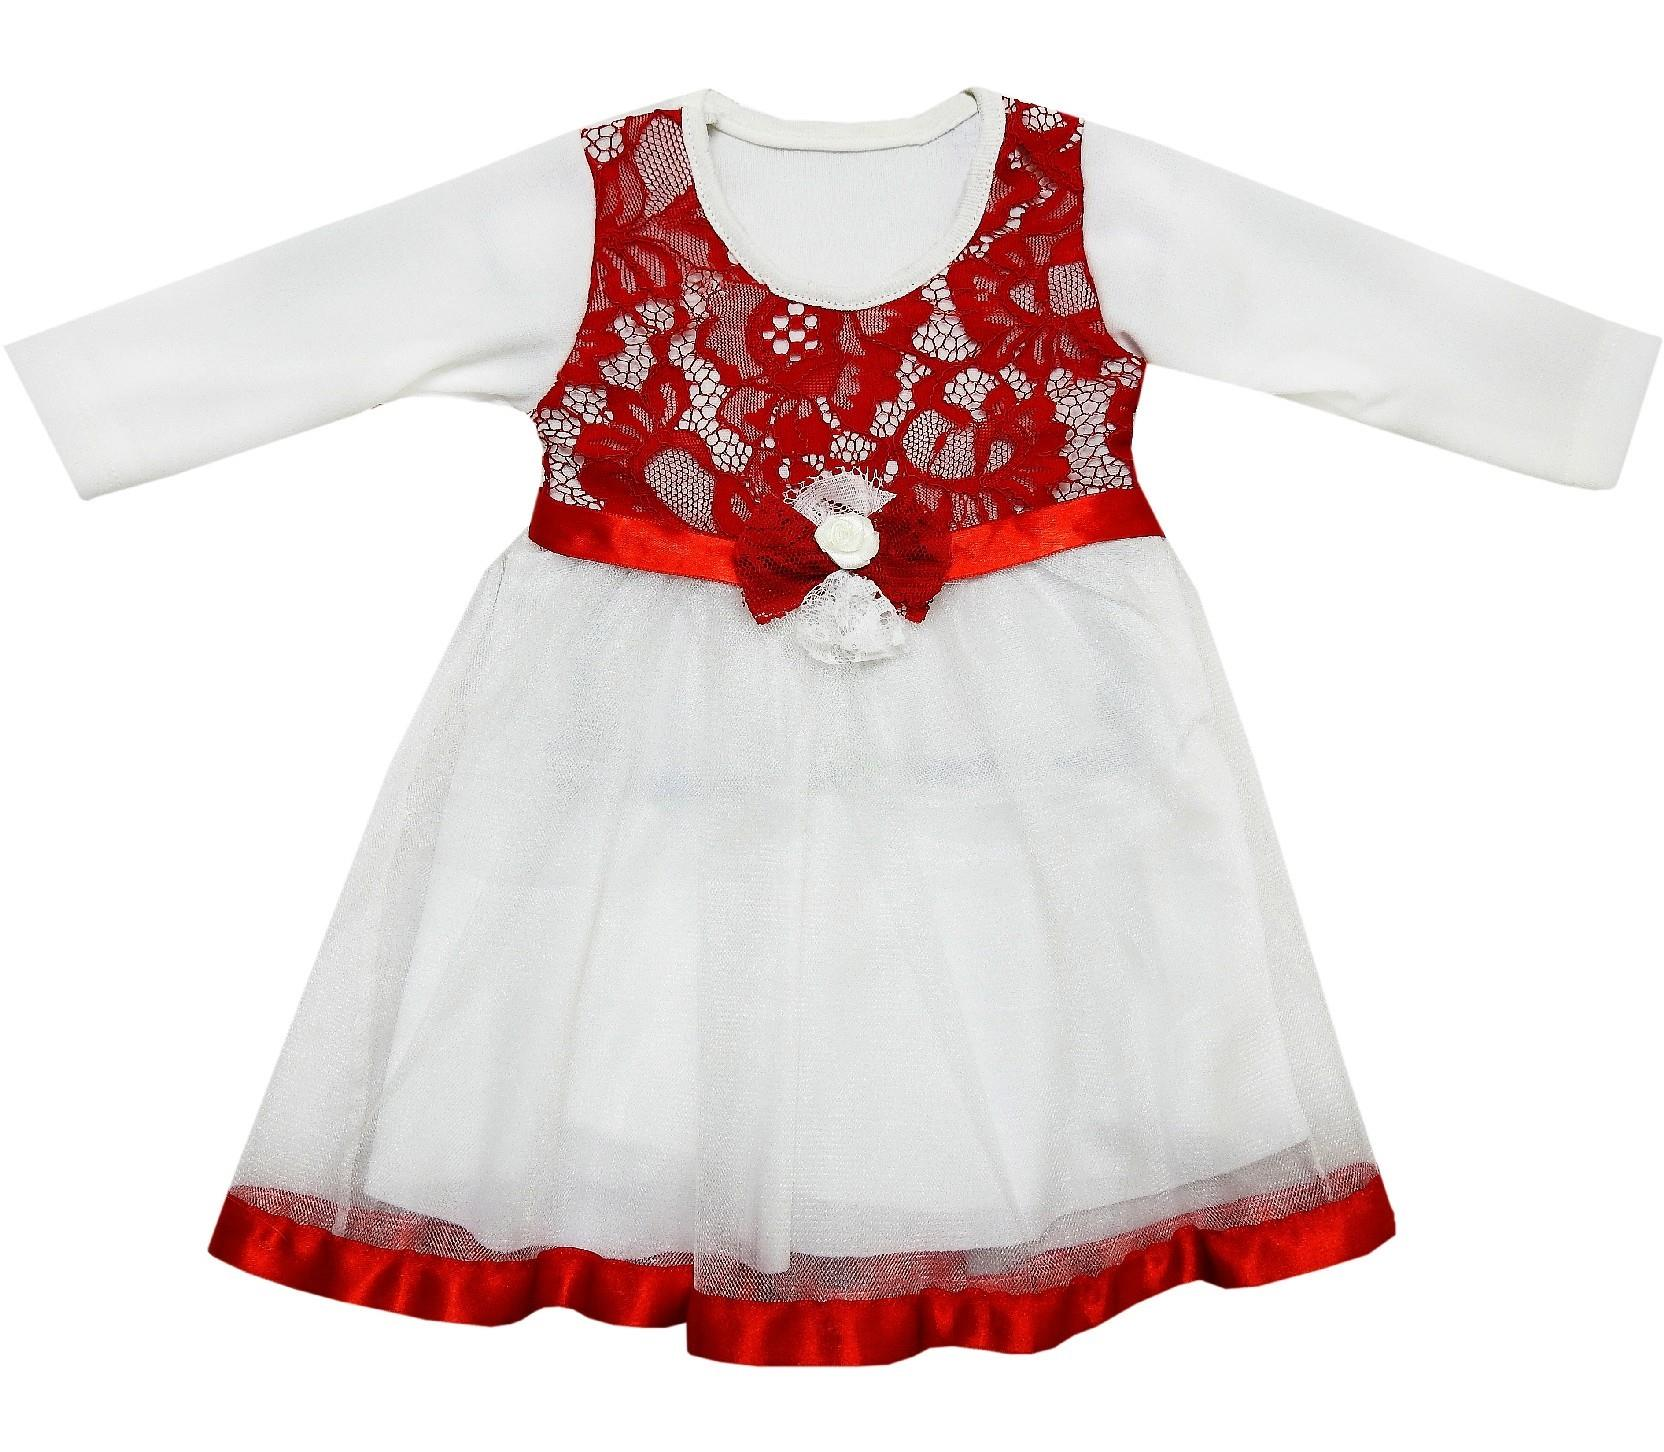 325 wholesale dress for girl (6-9-12 month)